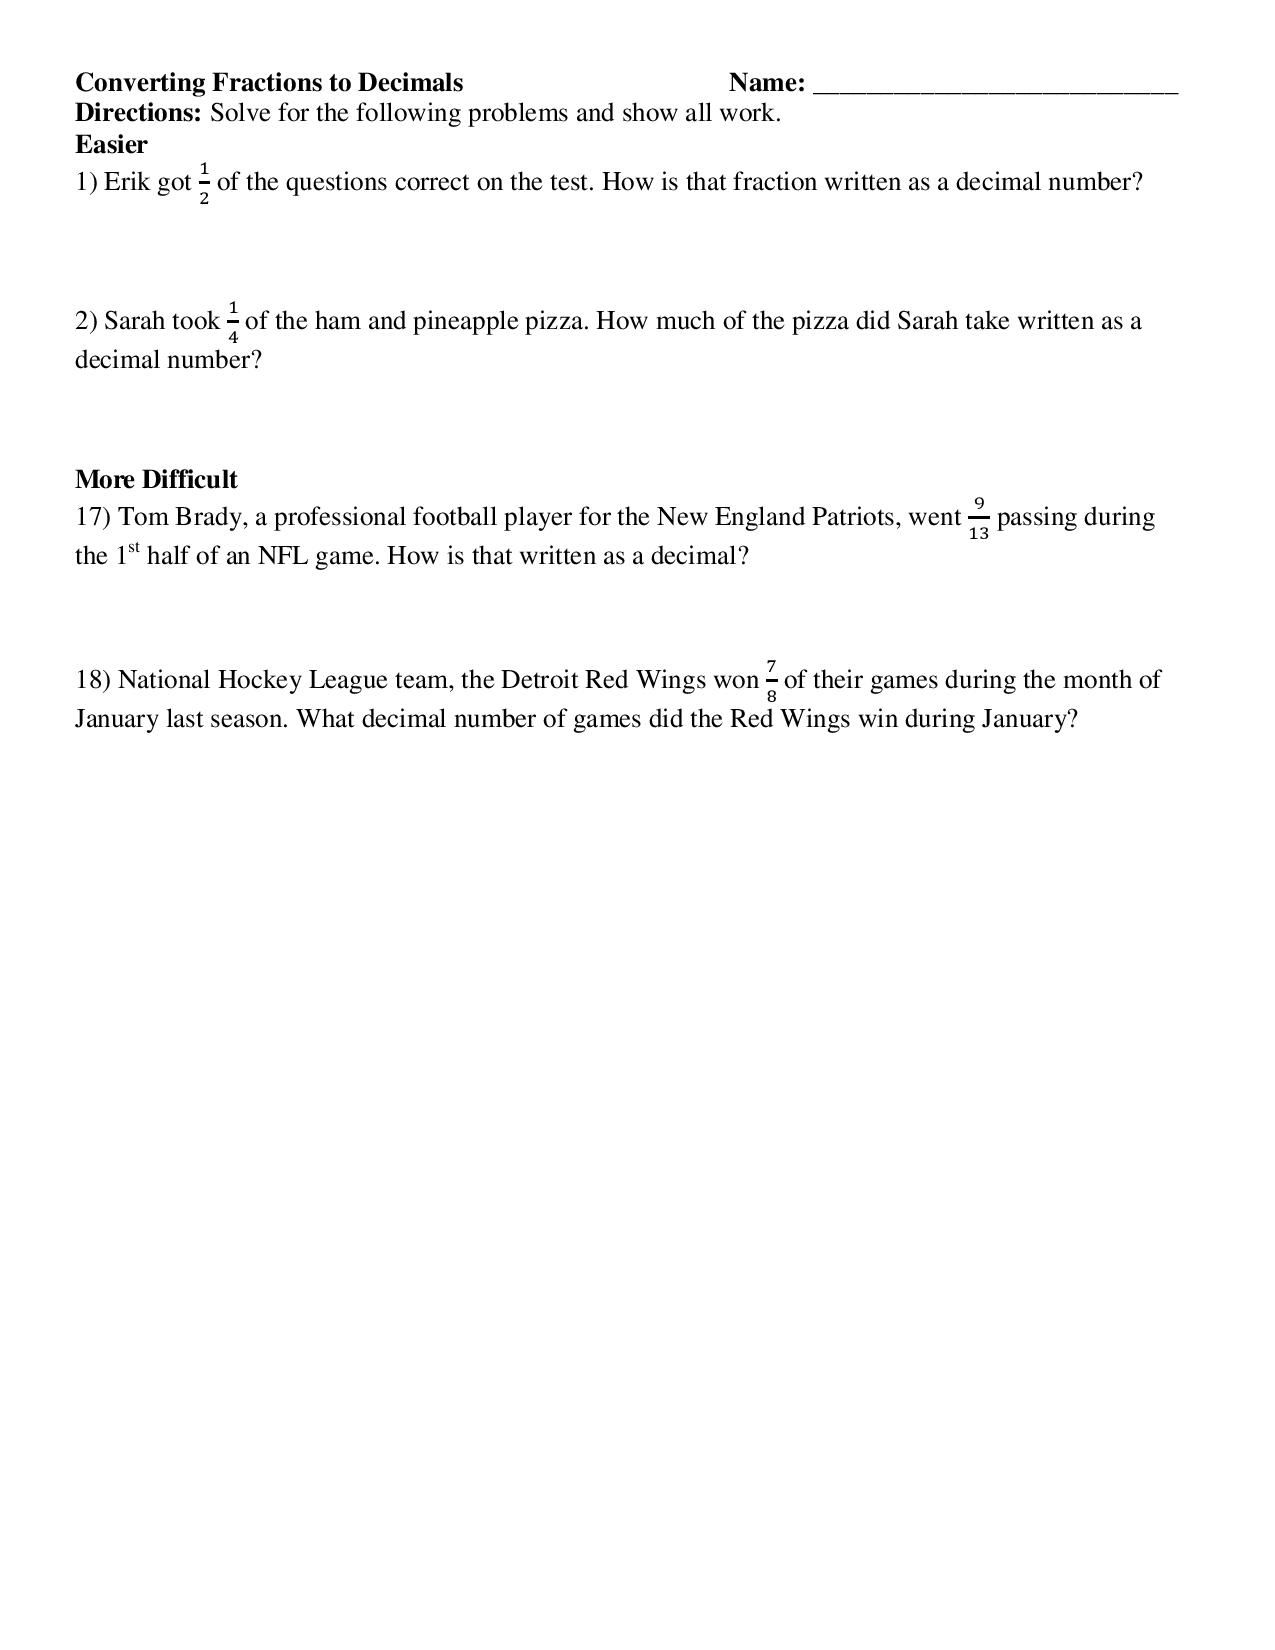 This 18 Question Worksheet Uses Real World Situations Including Sports Statistics To Convert